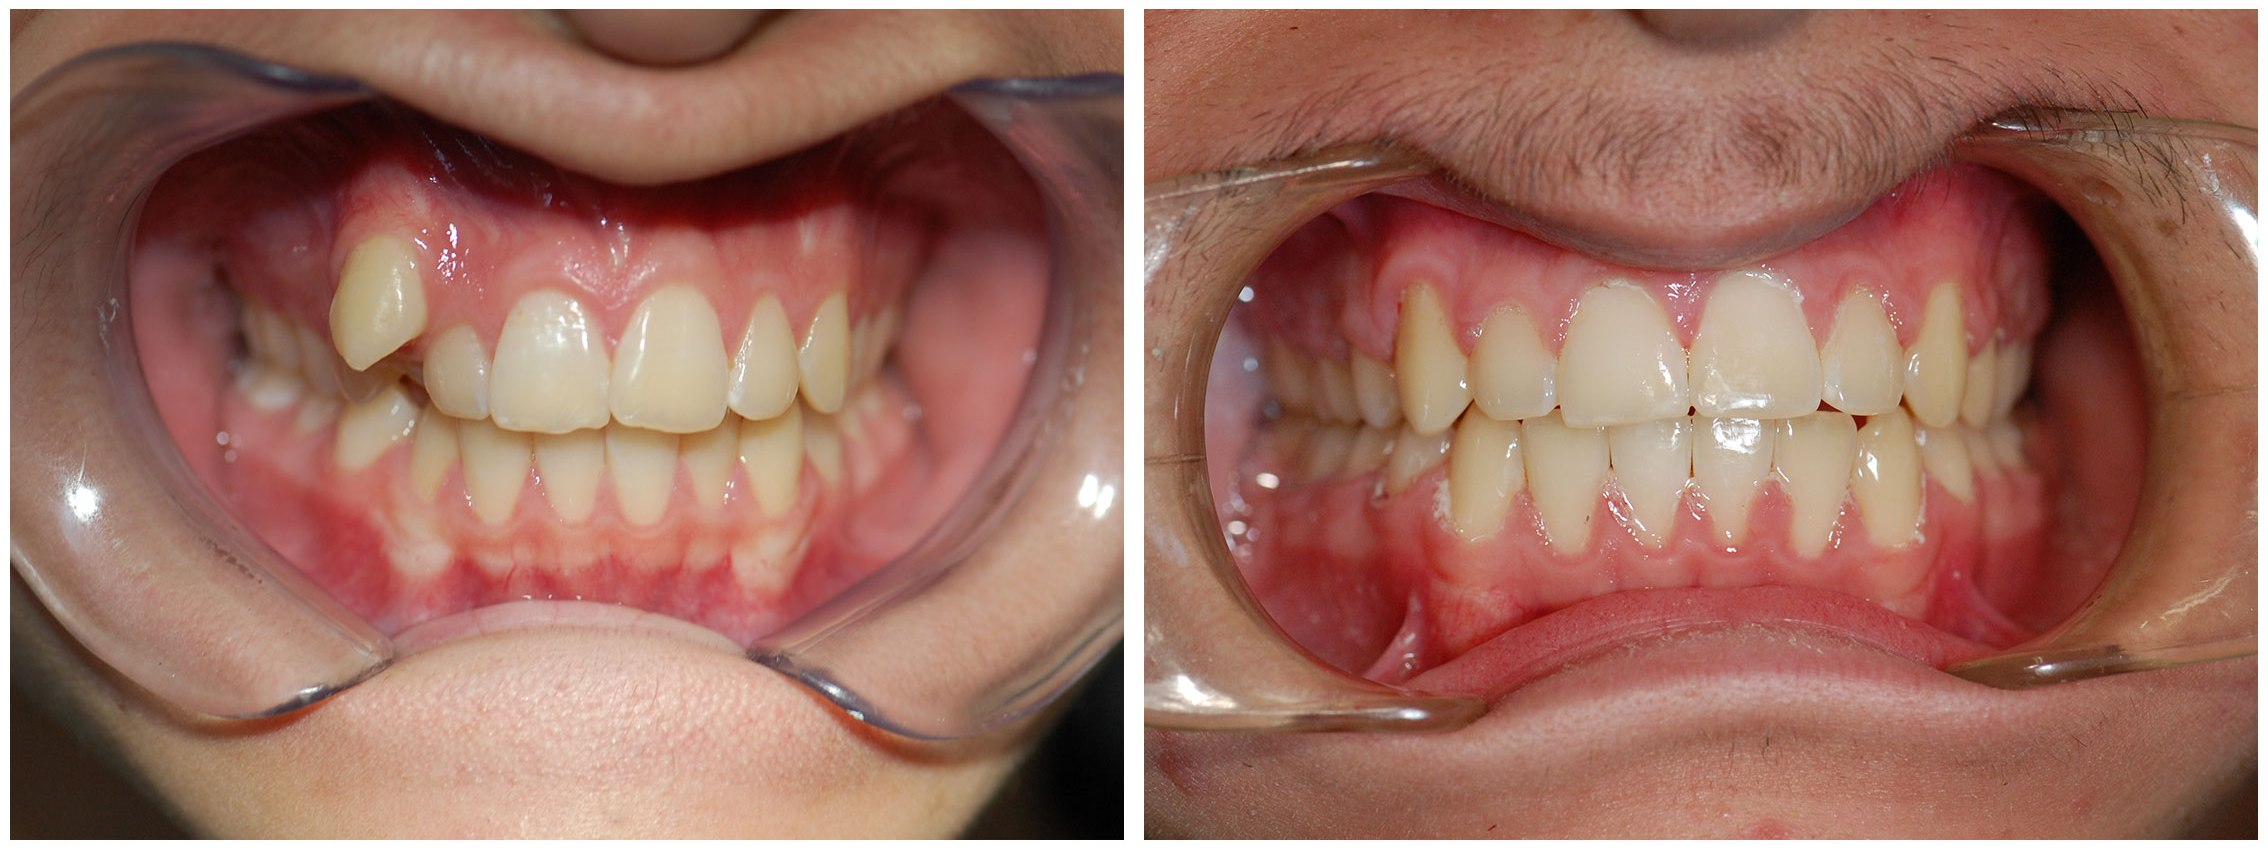 Infant Dental Braces Before & After